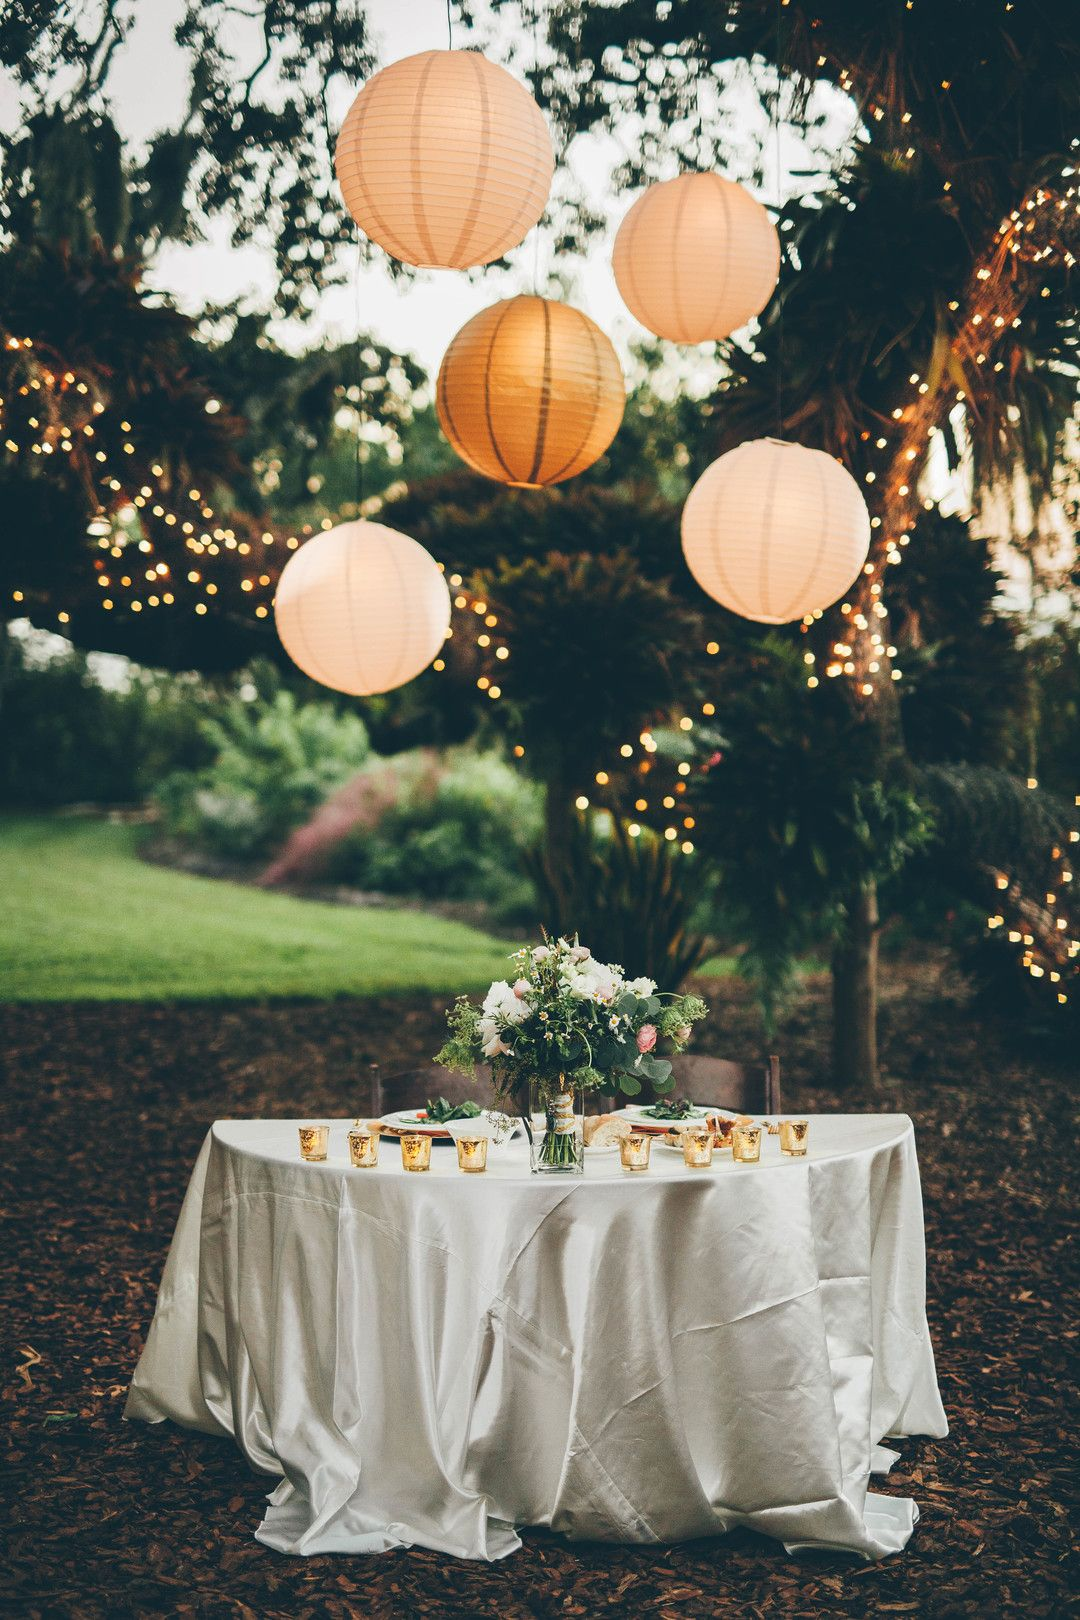 Wedding reception lighting design with paper lantern and stringlights